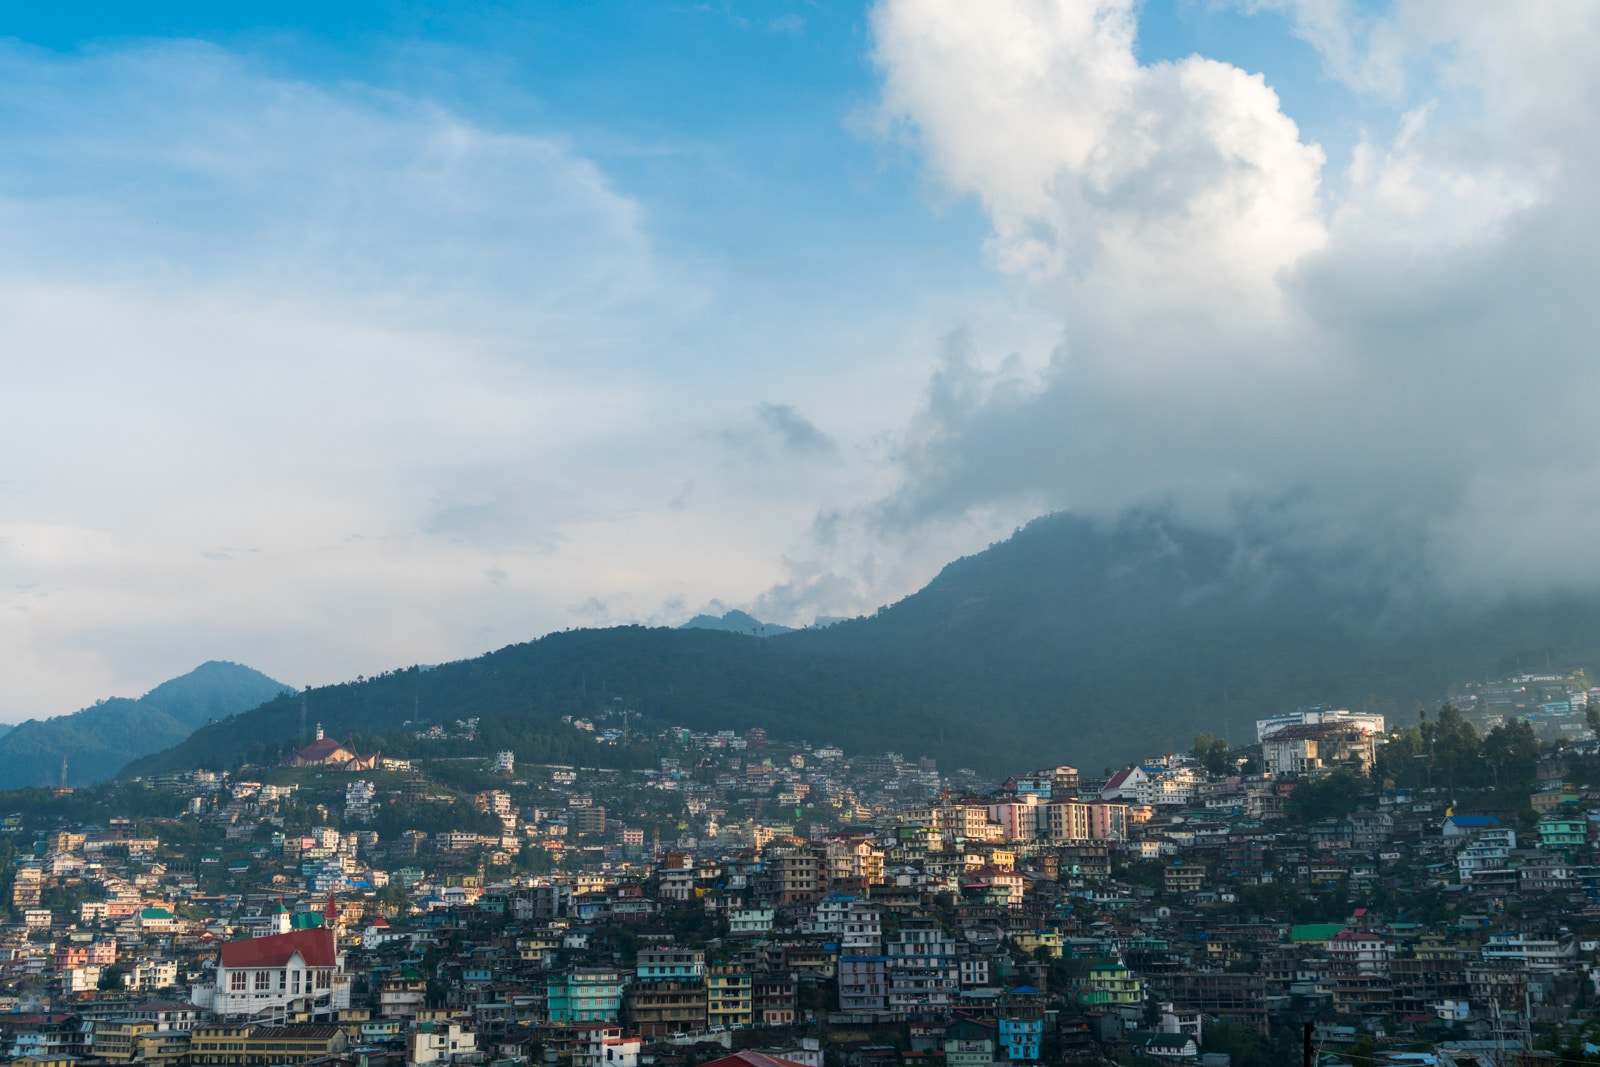 A view of Kohima from the balcony of Morung Lodge homestay